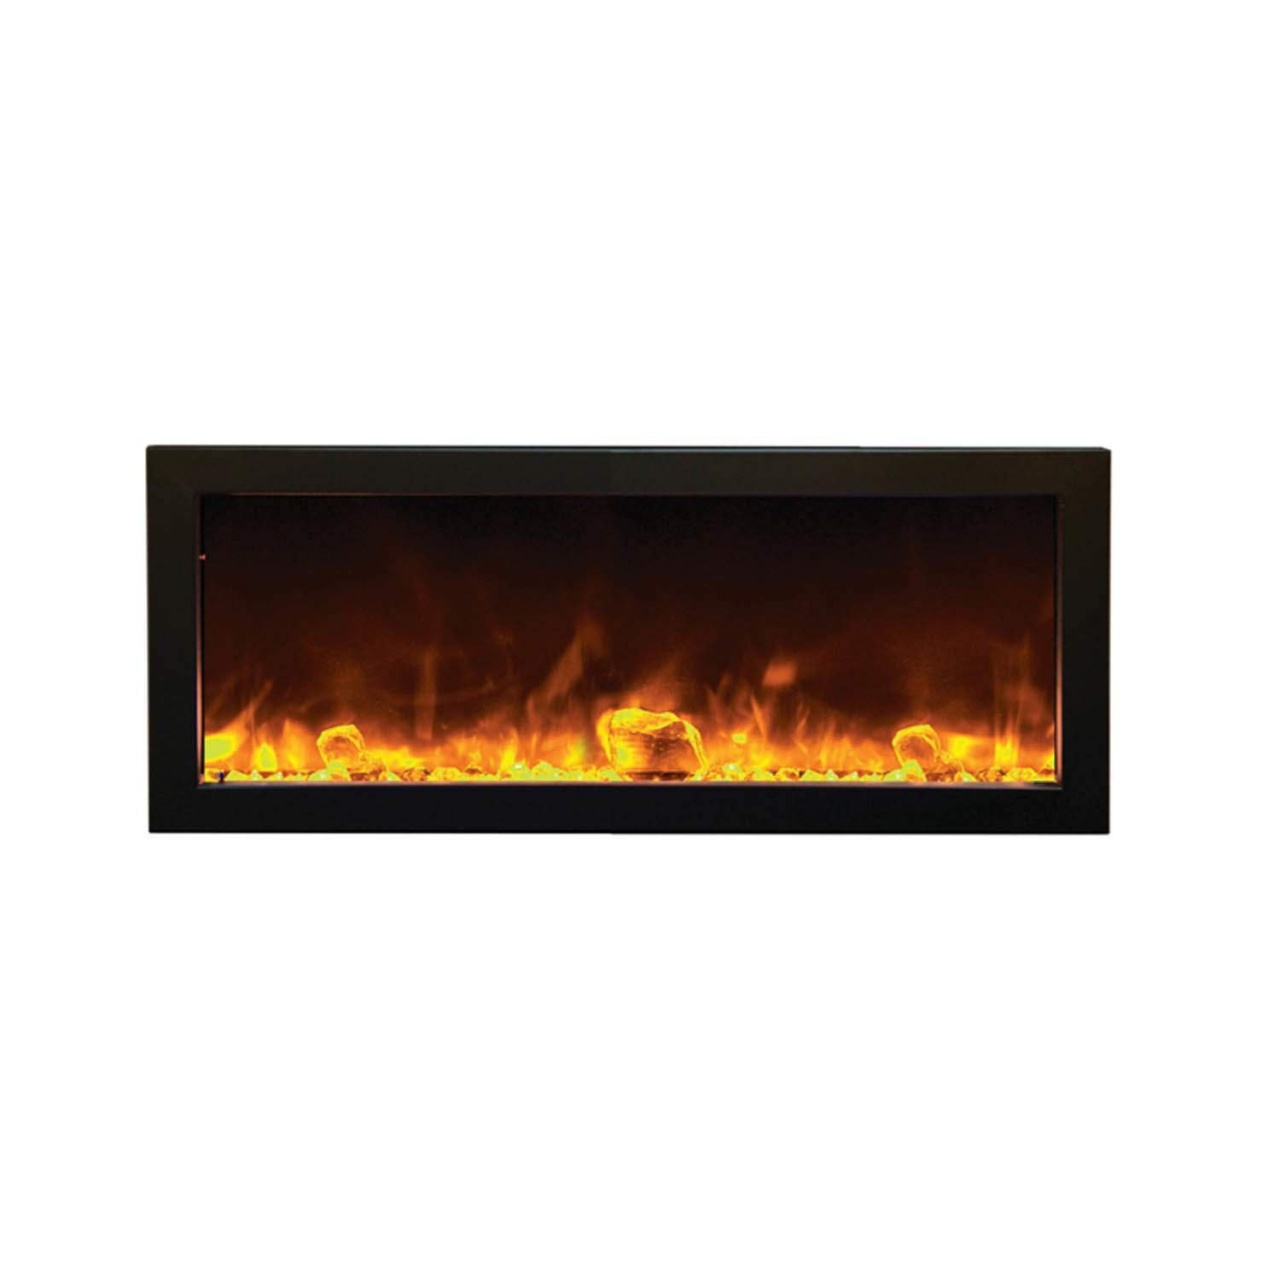 22 inch electric fireplace insert amantii bi 40 slim od outdoor panorama series slim electric fireplace 40 inch from 22 inch electric fireplace insert